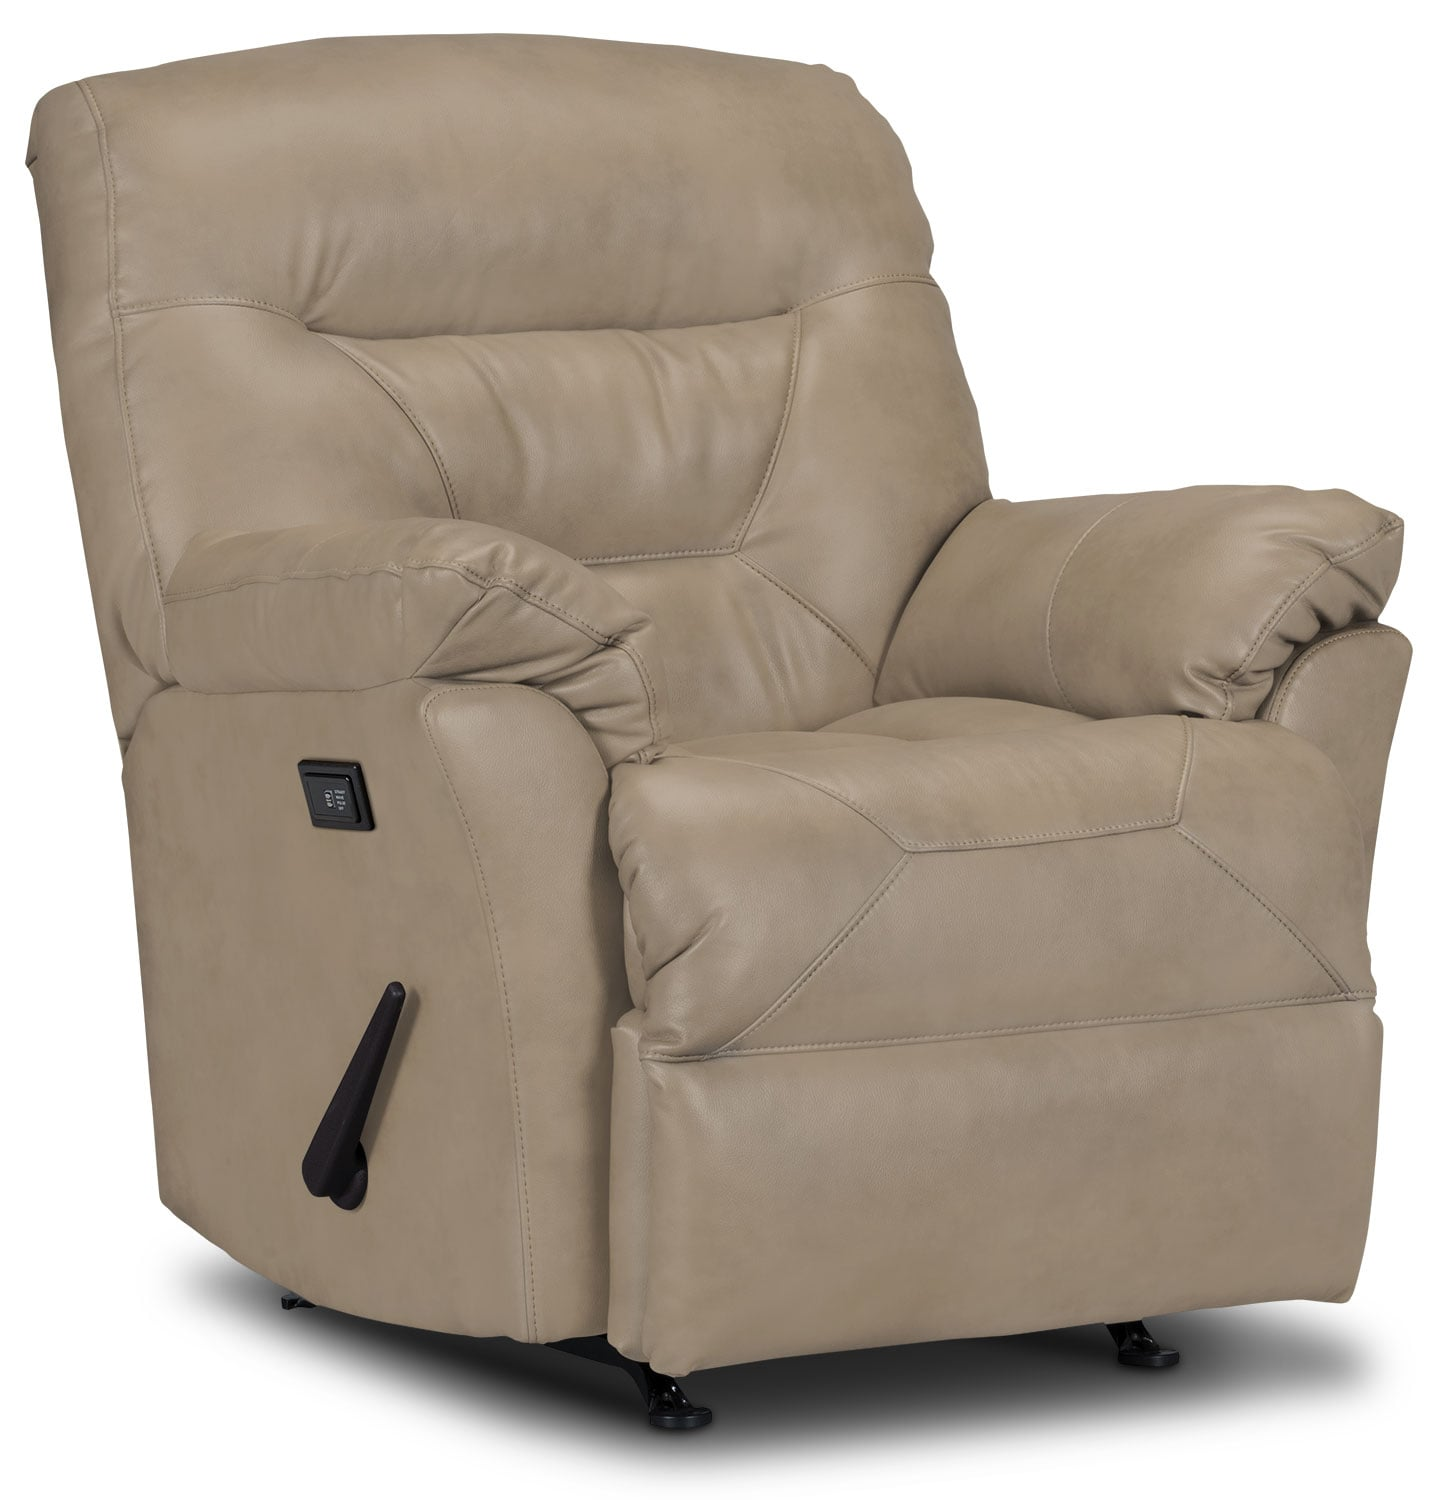 Designed2B Recliner 4579 Genuine Leather Massage Recliner - Putty